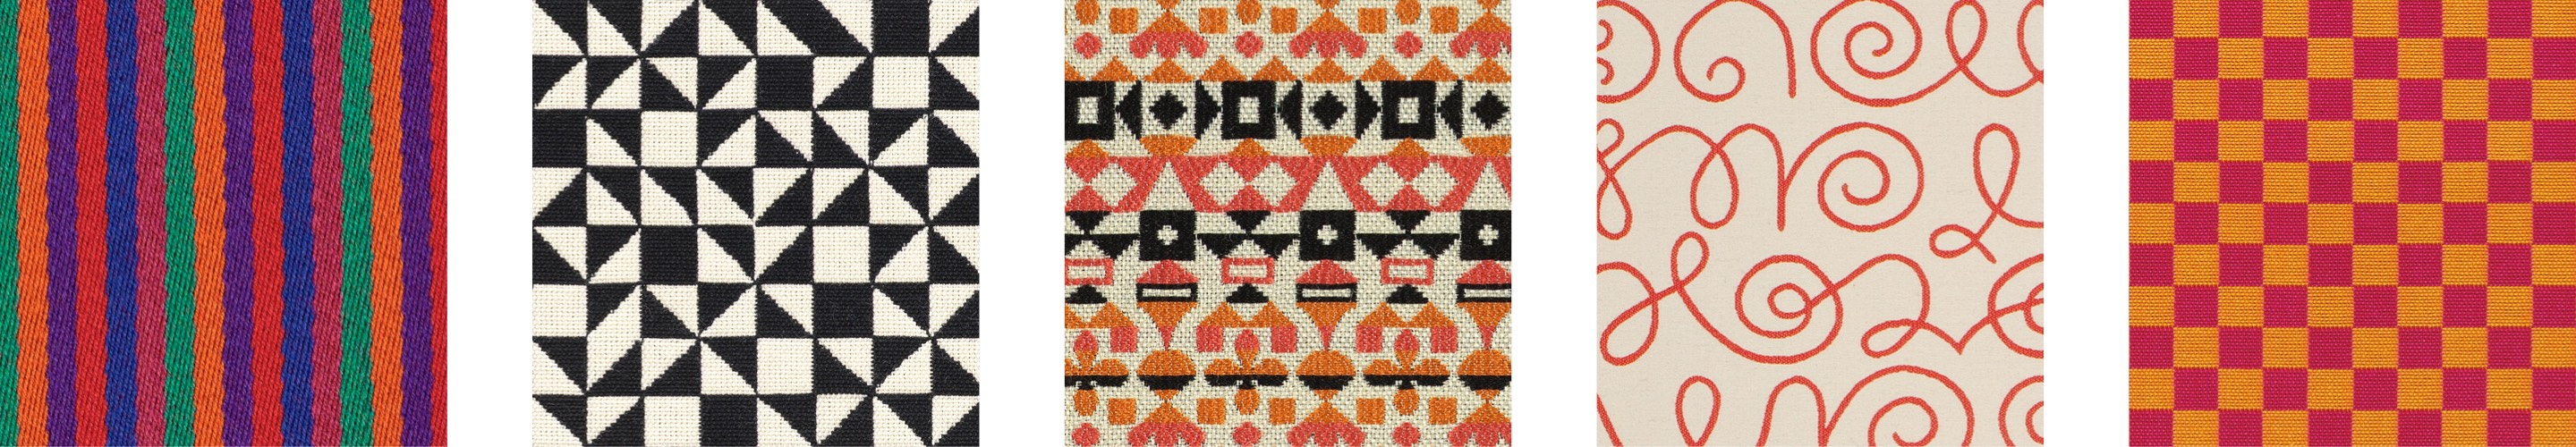 Textiles by Alexander Girard: Jacobs Coat, Checker Split, Arabesque, Names, Checker